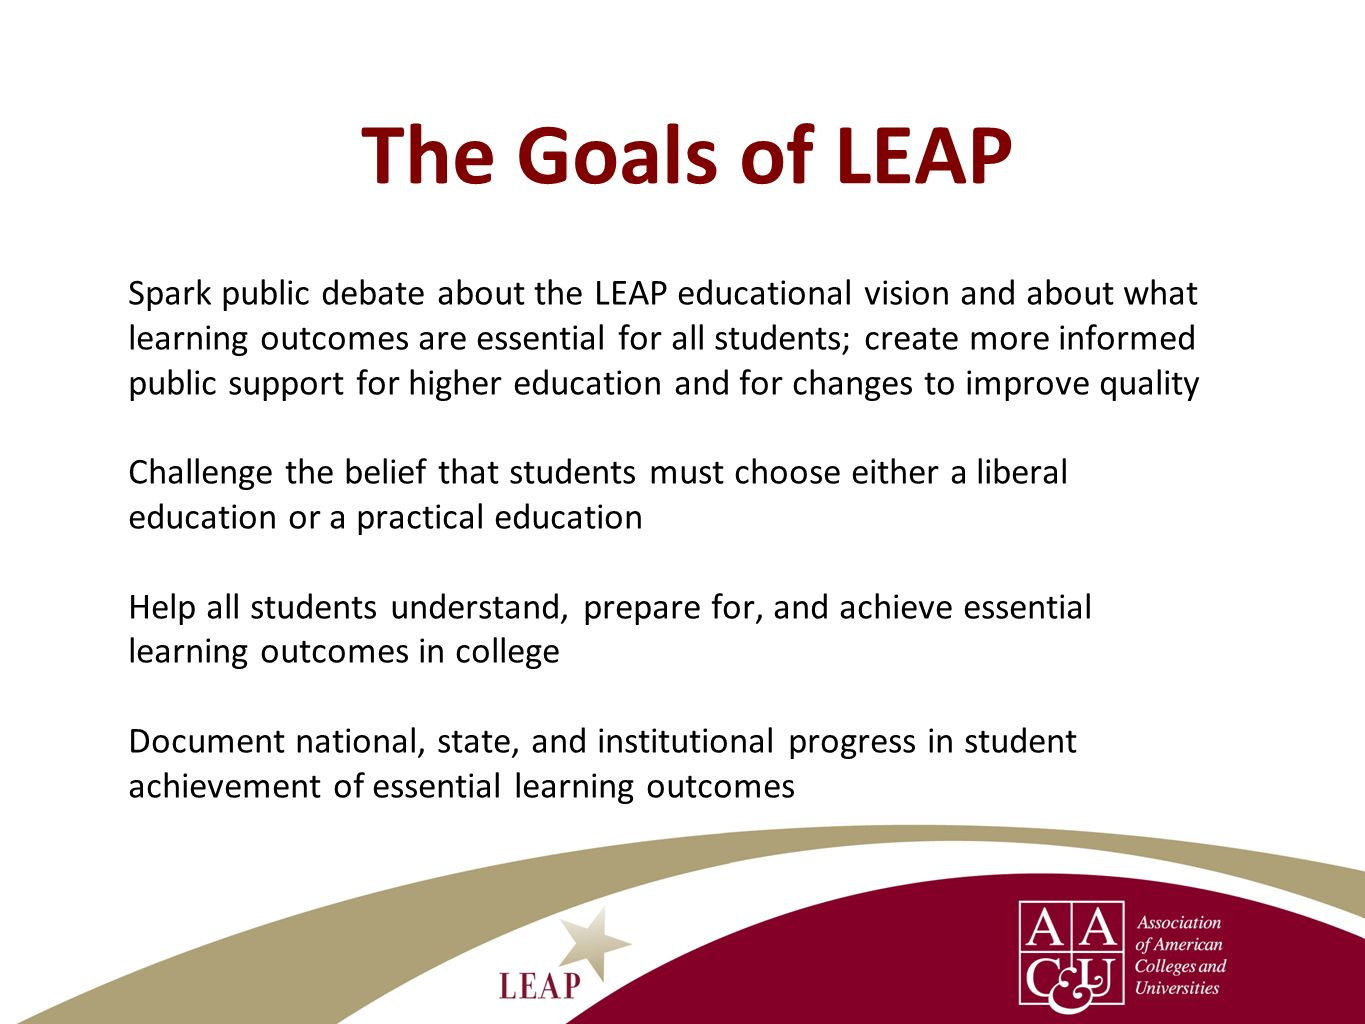 The Goals of LEAP